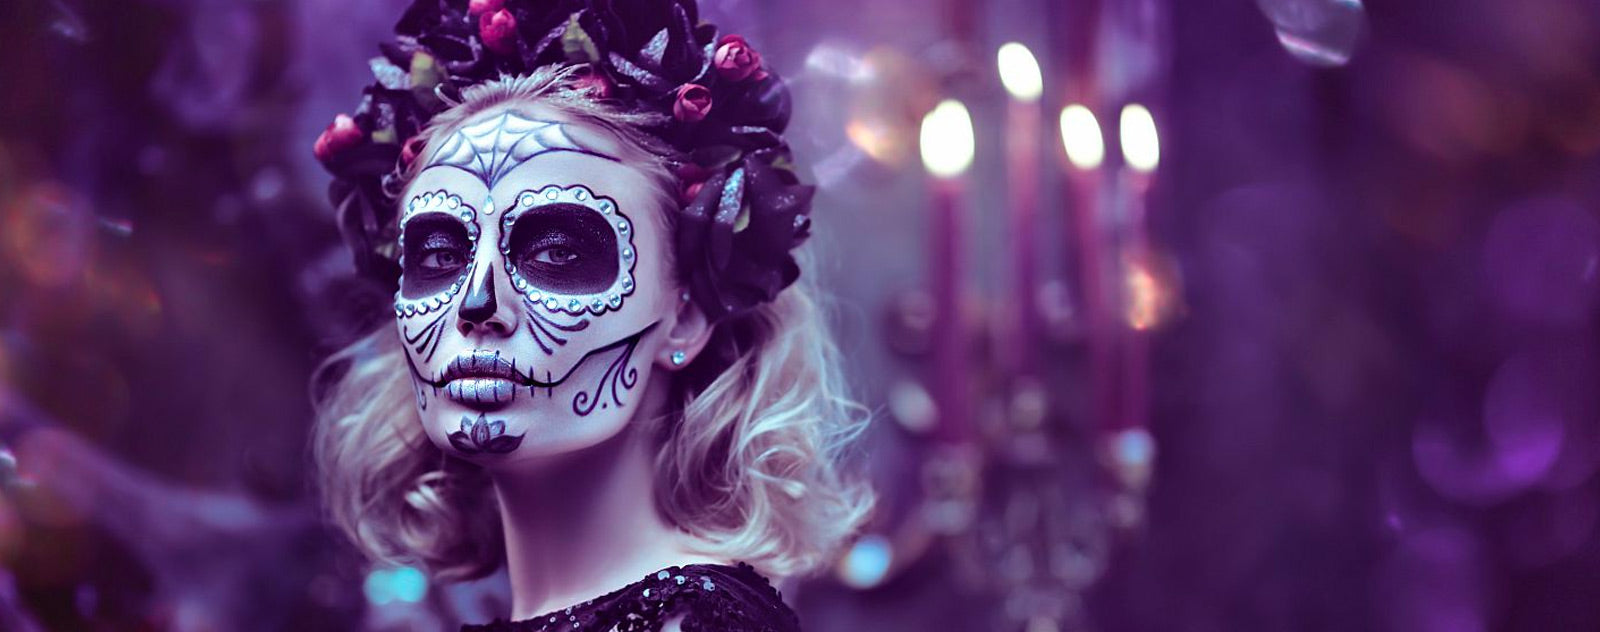 Maquillage Halloween Calavera